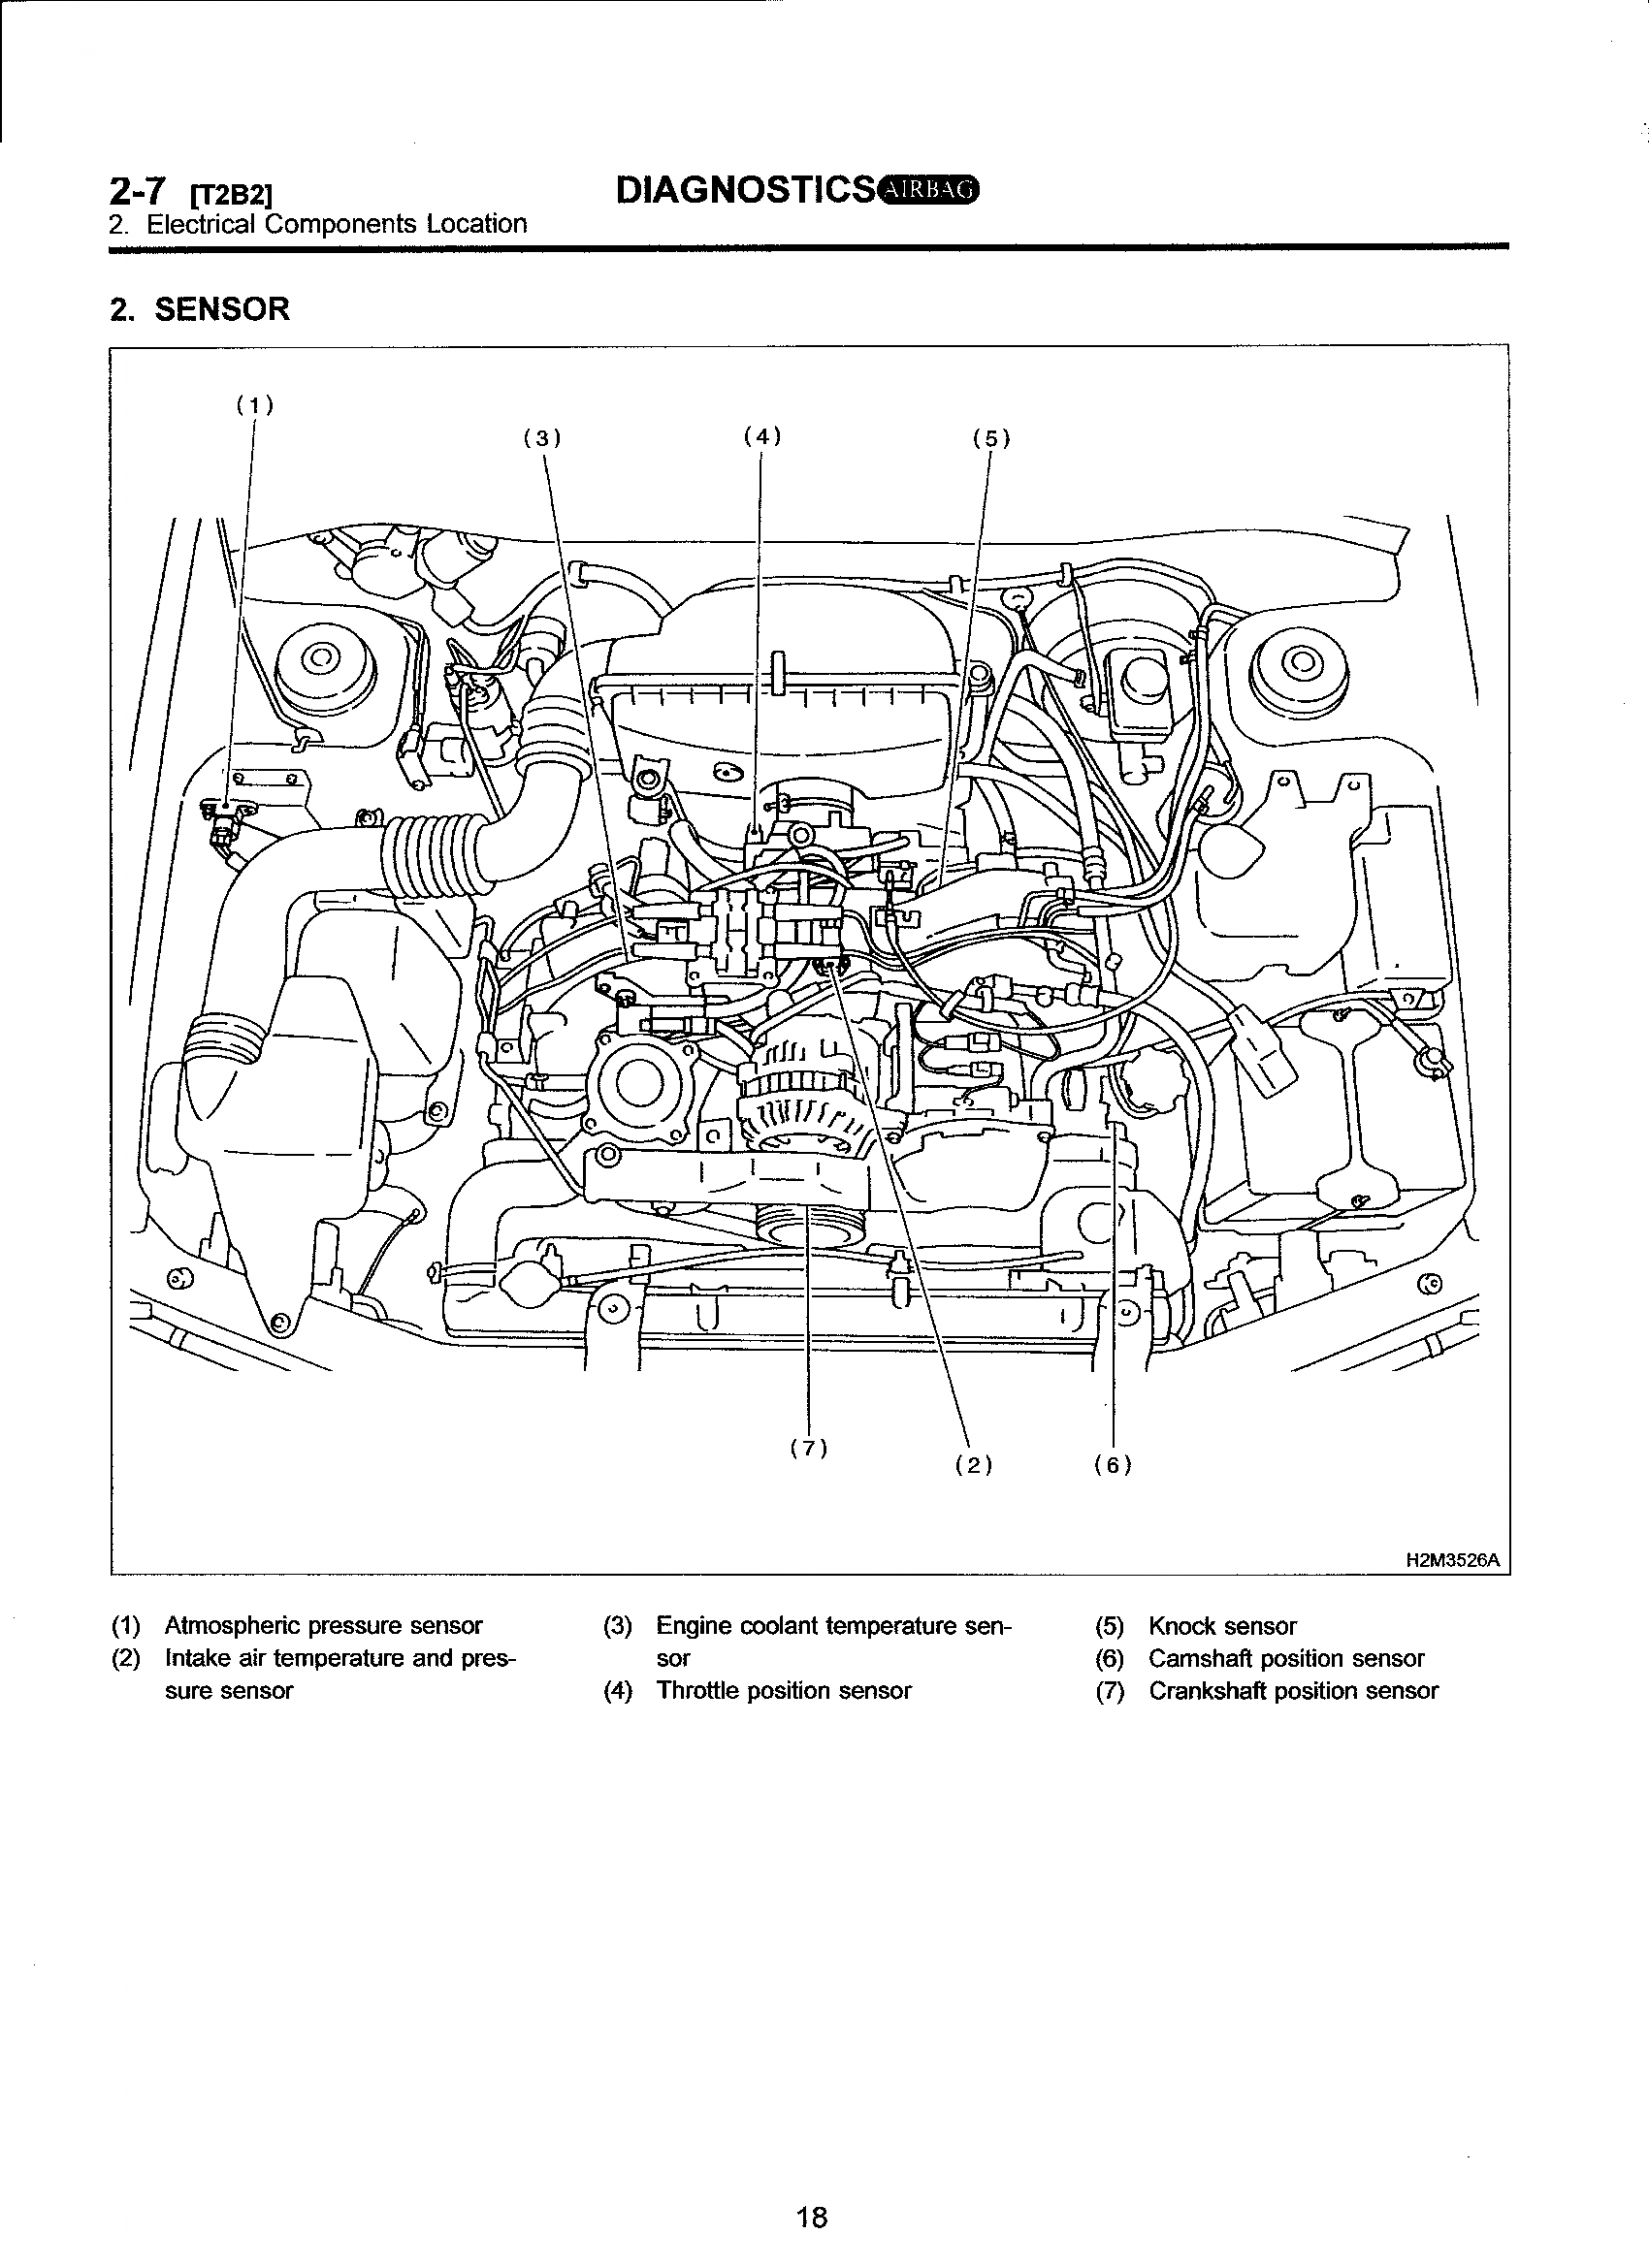 Subaru Engine Layout Diagram Subaru Engine Layout Diagram